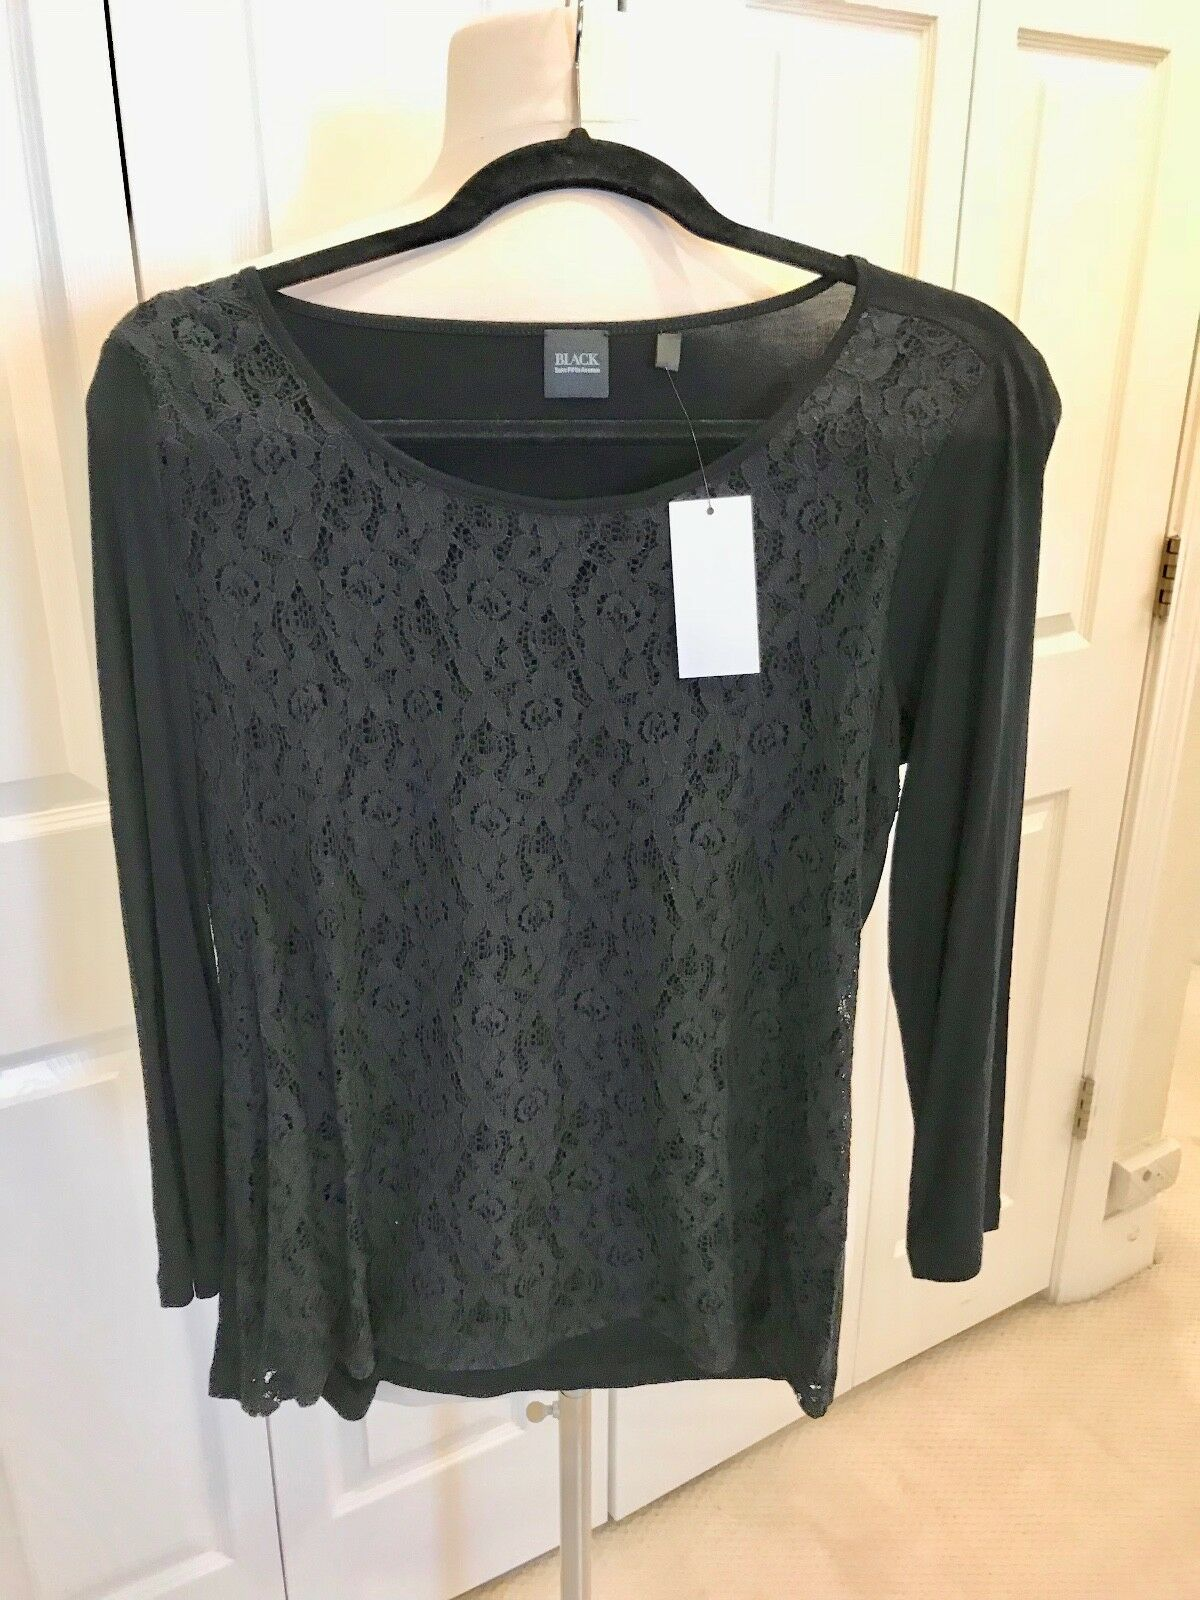 Beautiful Saks Fifth Avenue schwarz Top with Lace Front - M - NWT